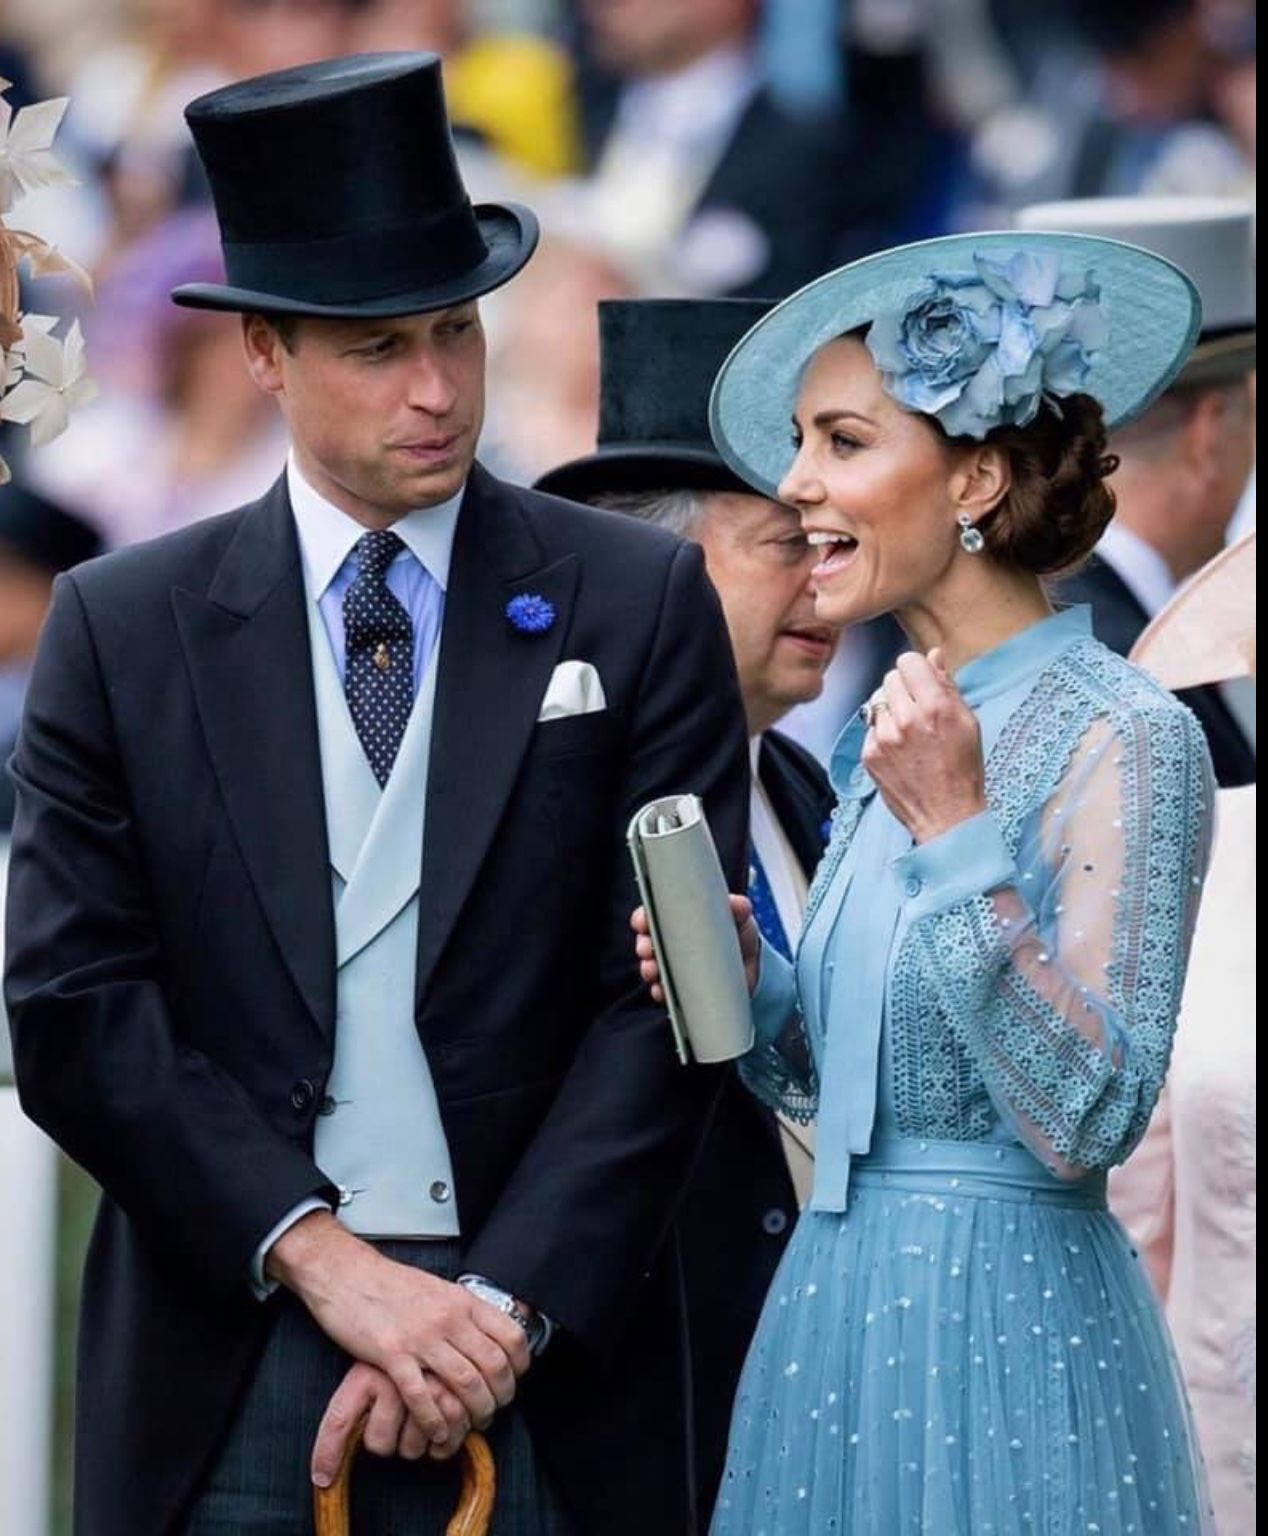 Prince William And Duchess Catherine 2019 With Images Royal